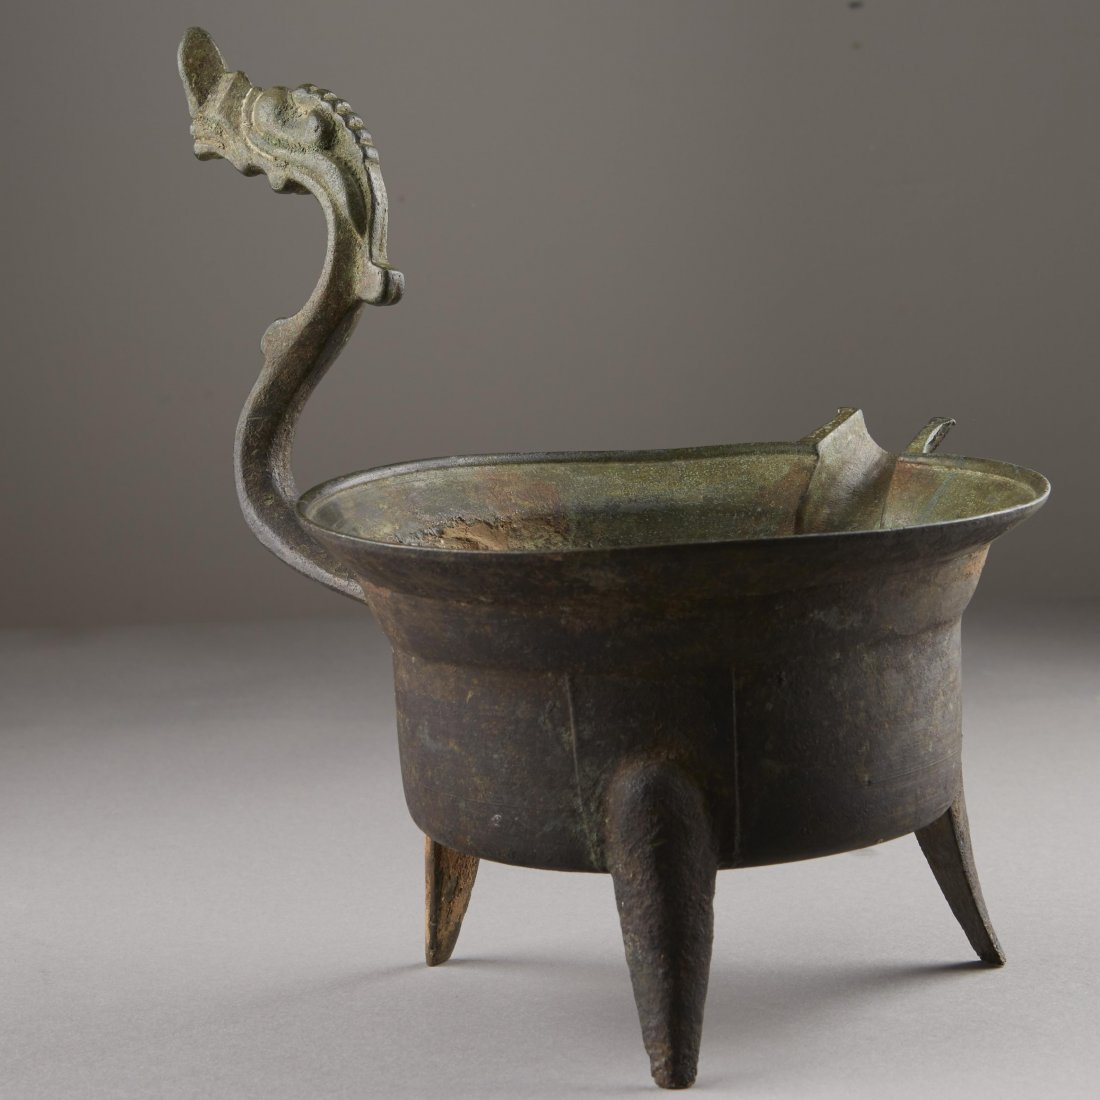 Chinese Bronze Han Dynasty Tripod Cooking Vessel - 4